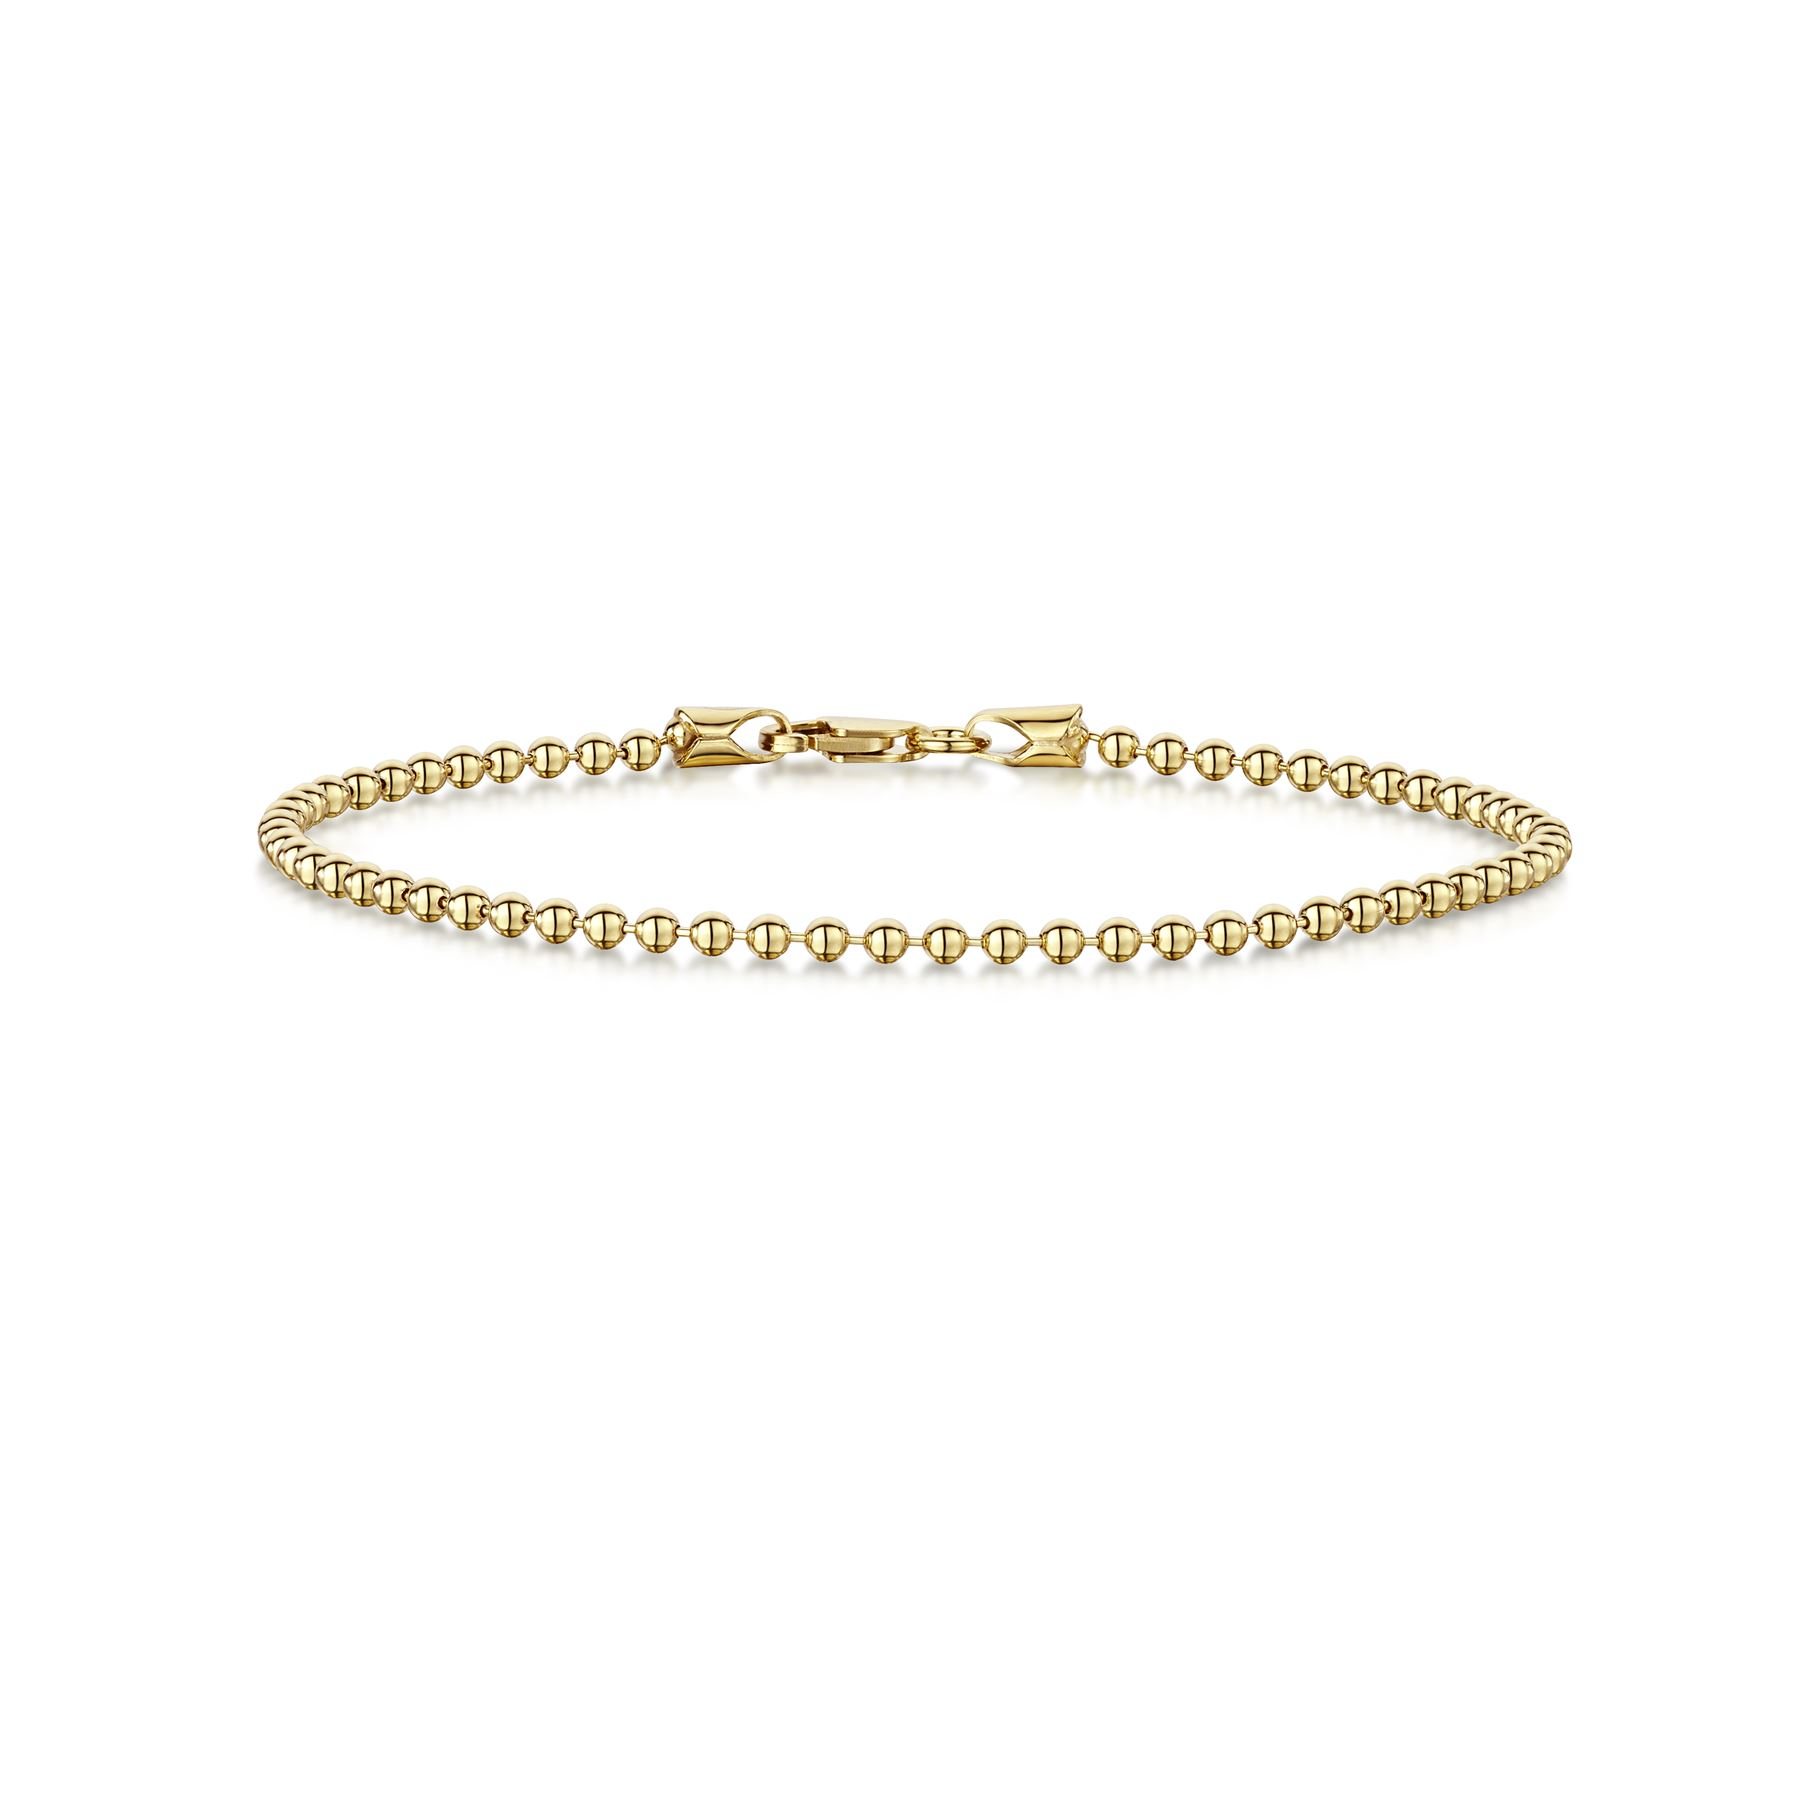 Amberta-Genuine-Gold-Plated-on-925-Sterling-Silver-Bracelet-Bangle-Made-in-Italy